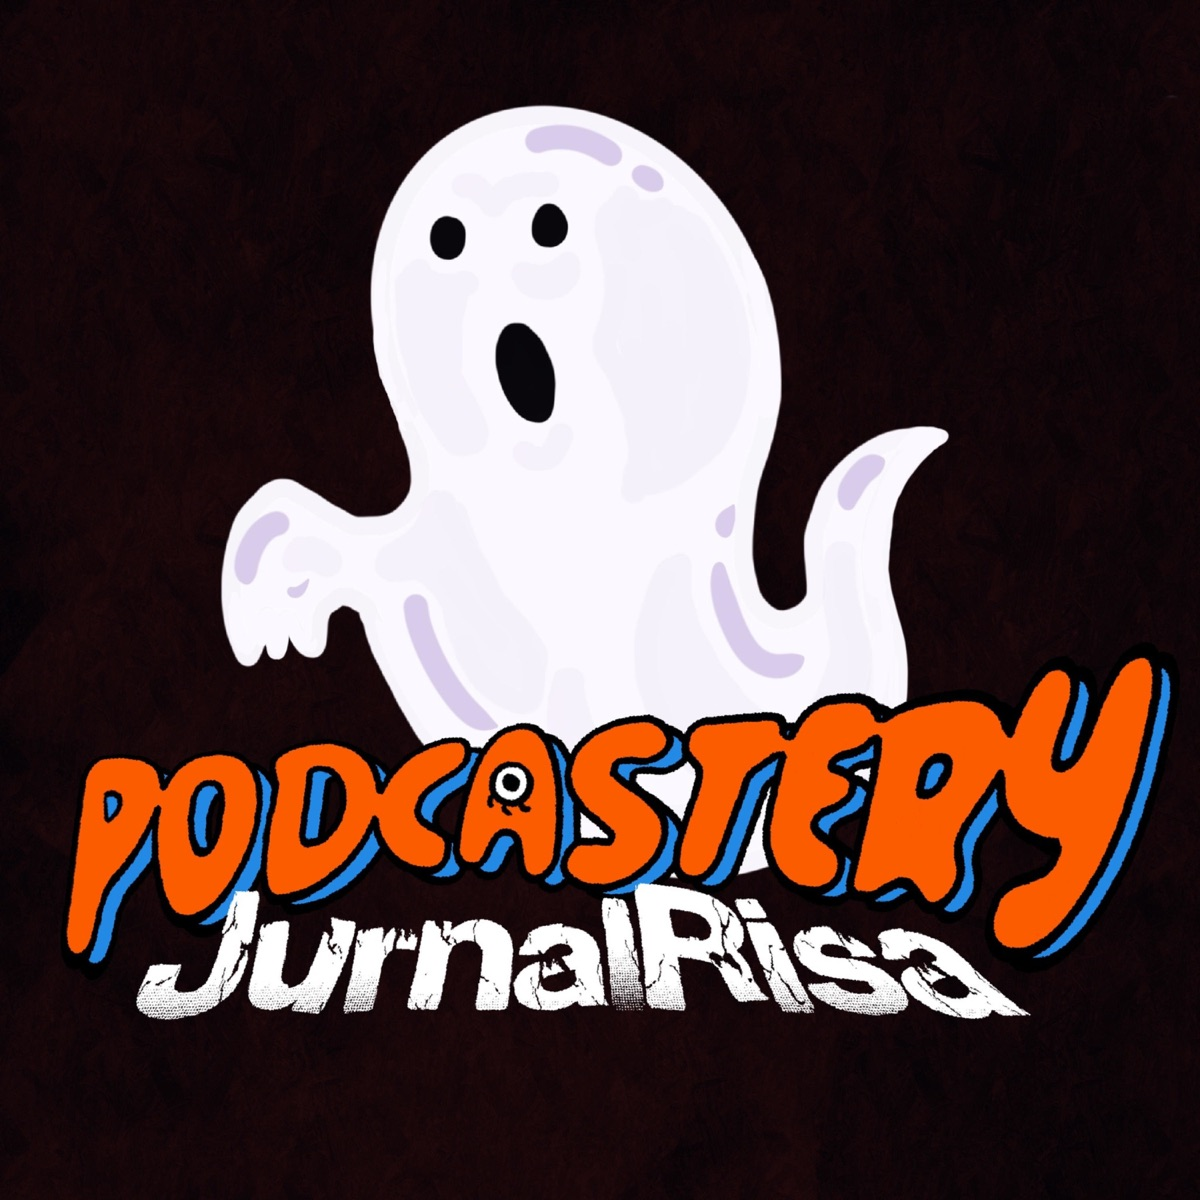 Podcastery Jurnalrisa